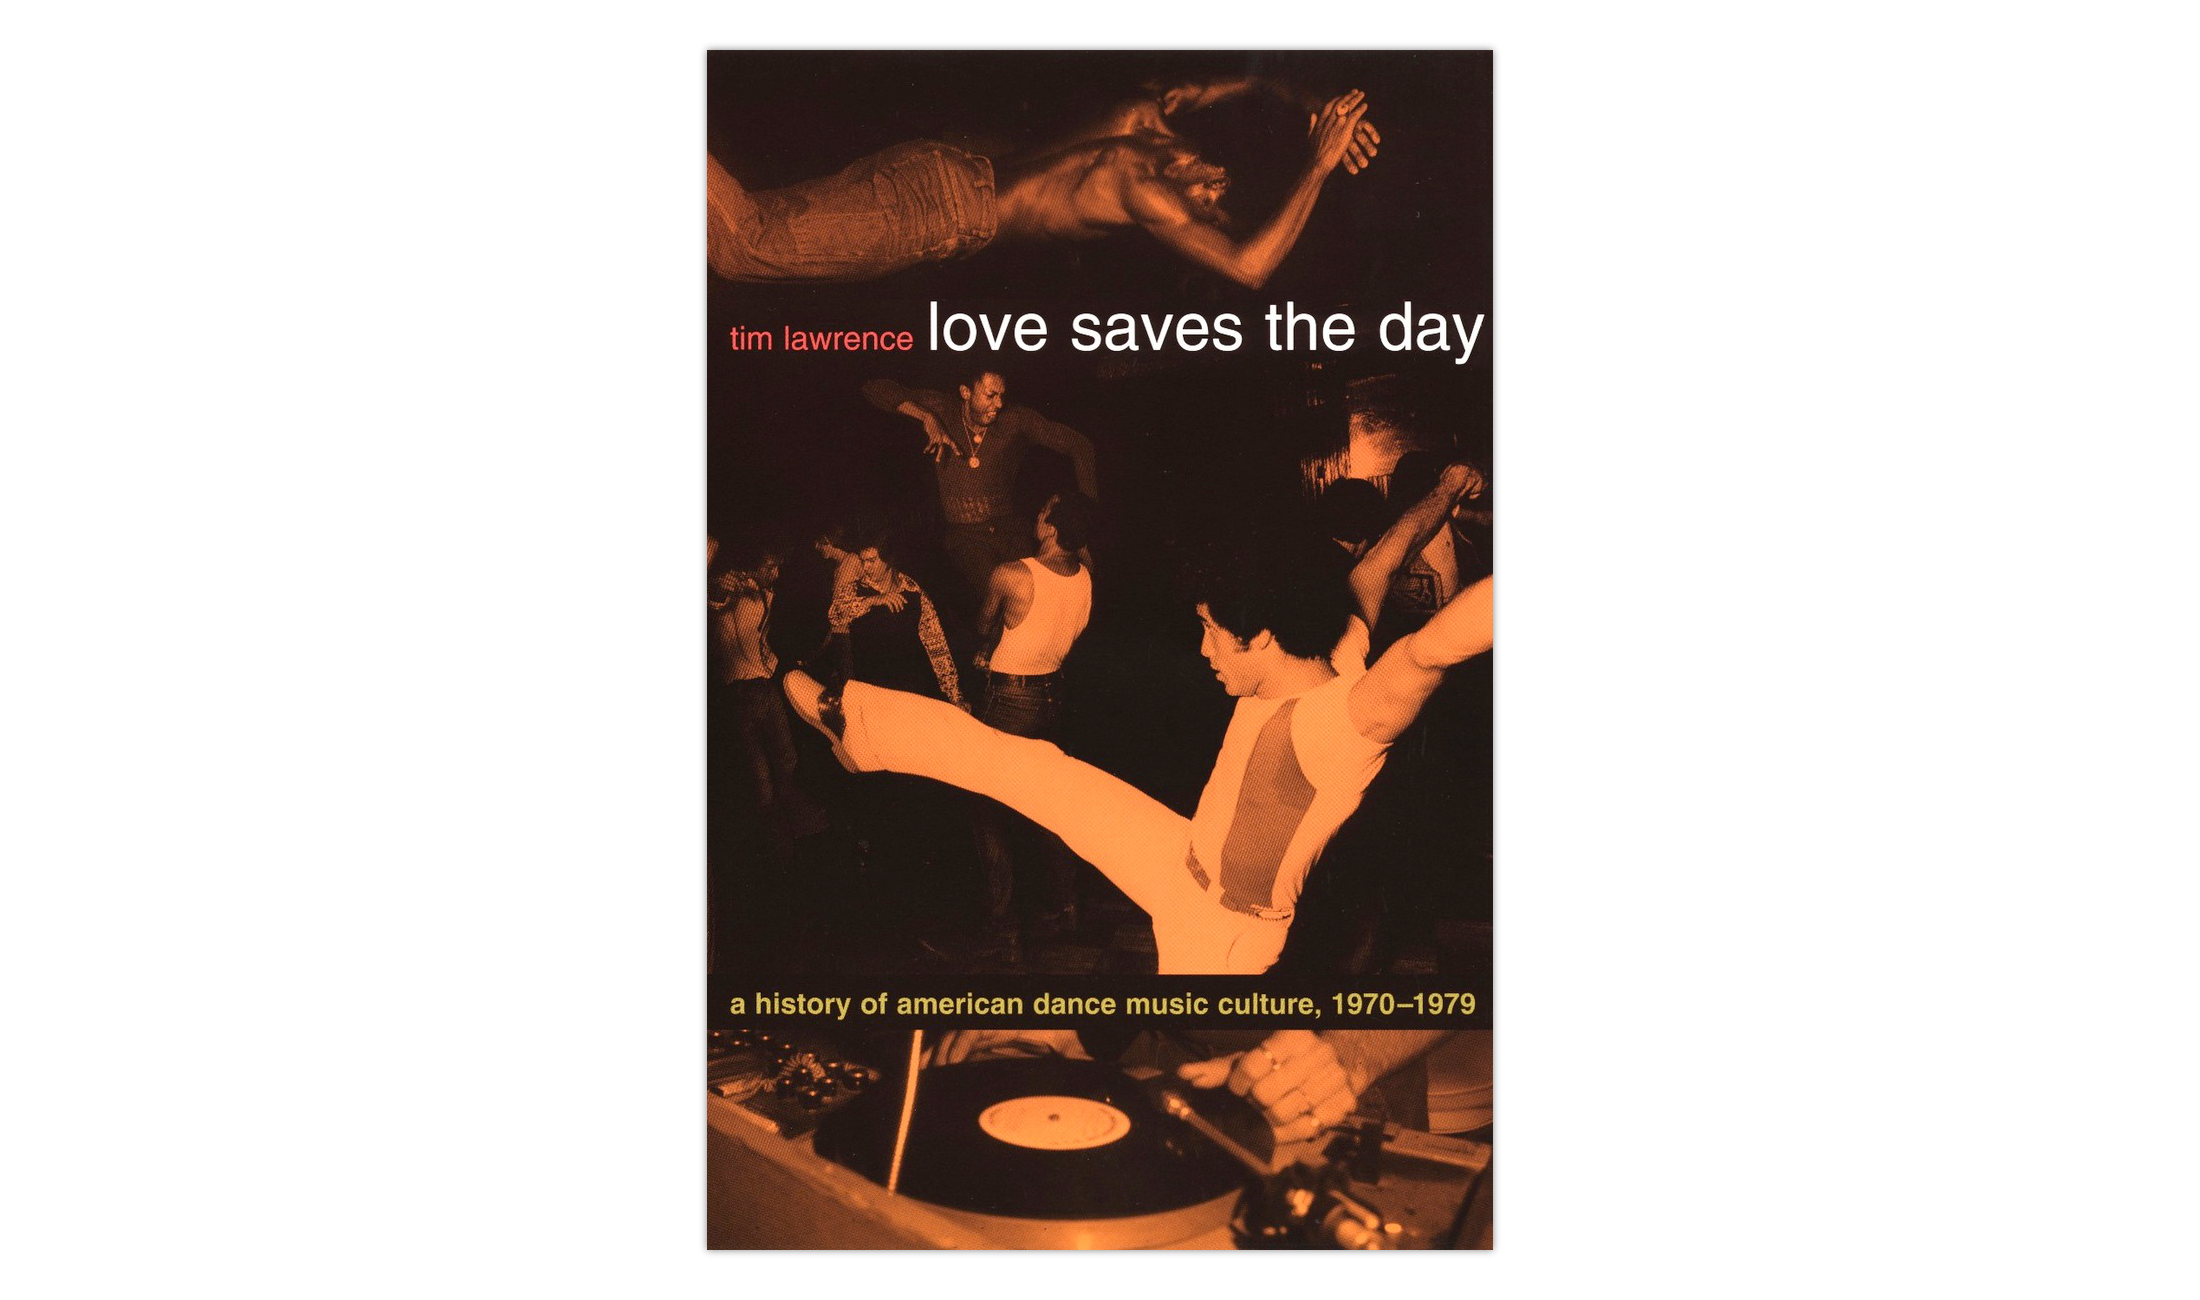 Love Saves the Day. A History of American Dance Music Culture 1970-1979 (2004) von Tim Lawrence.